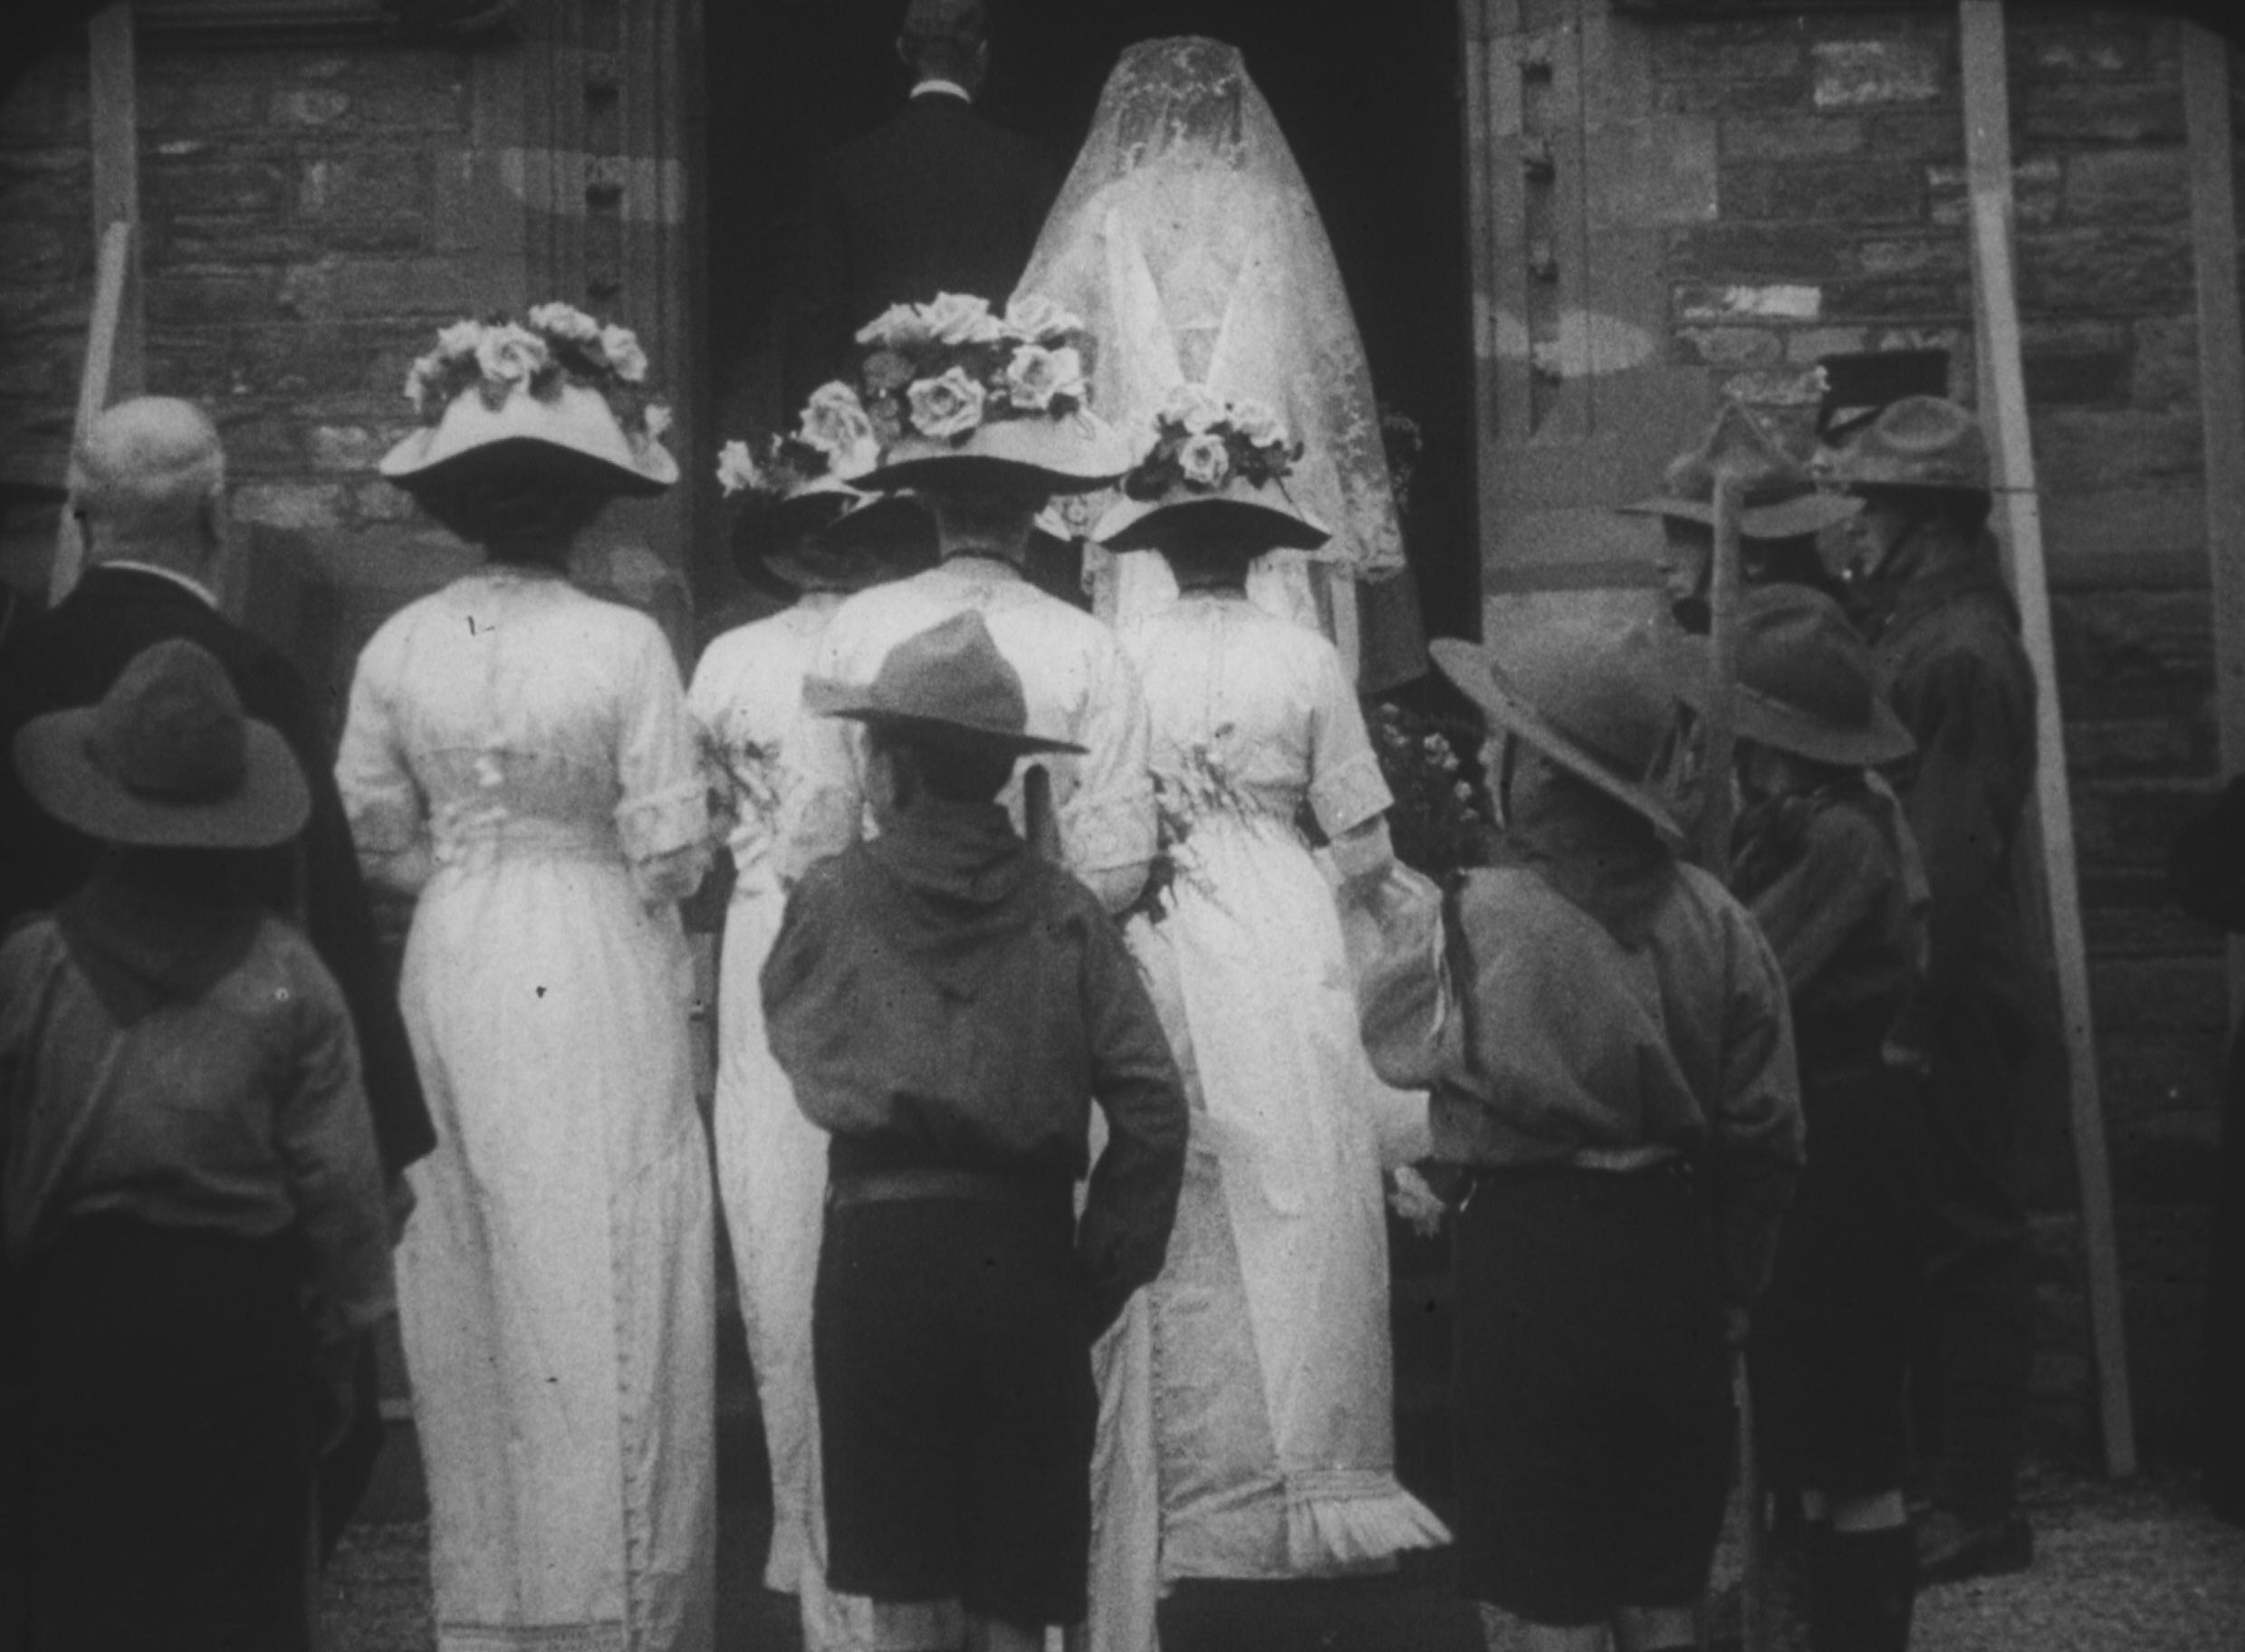 The bridal procession enters the church